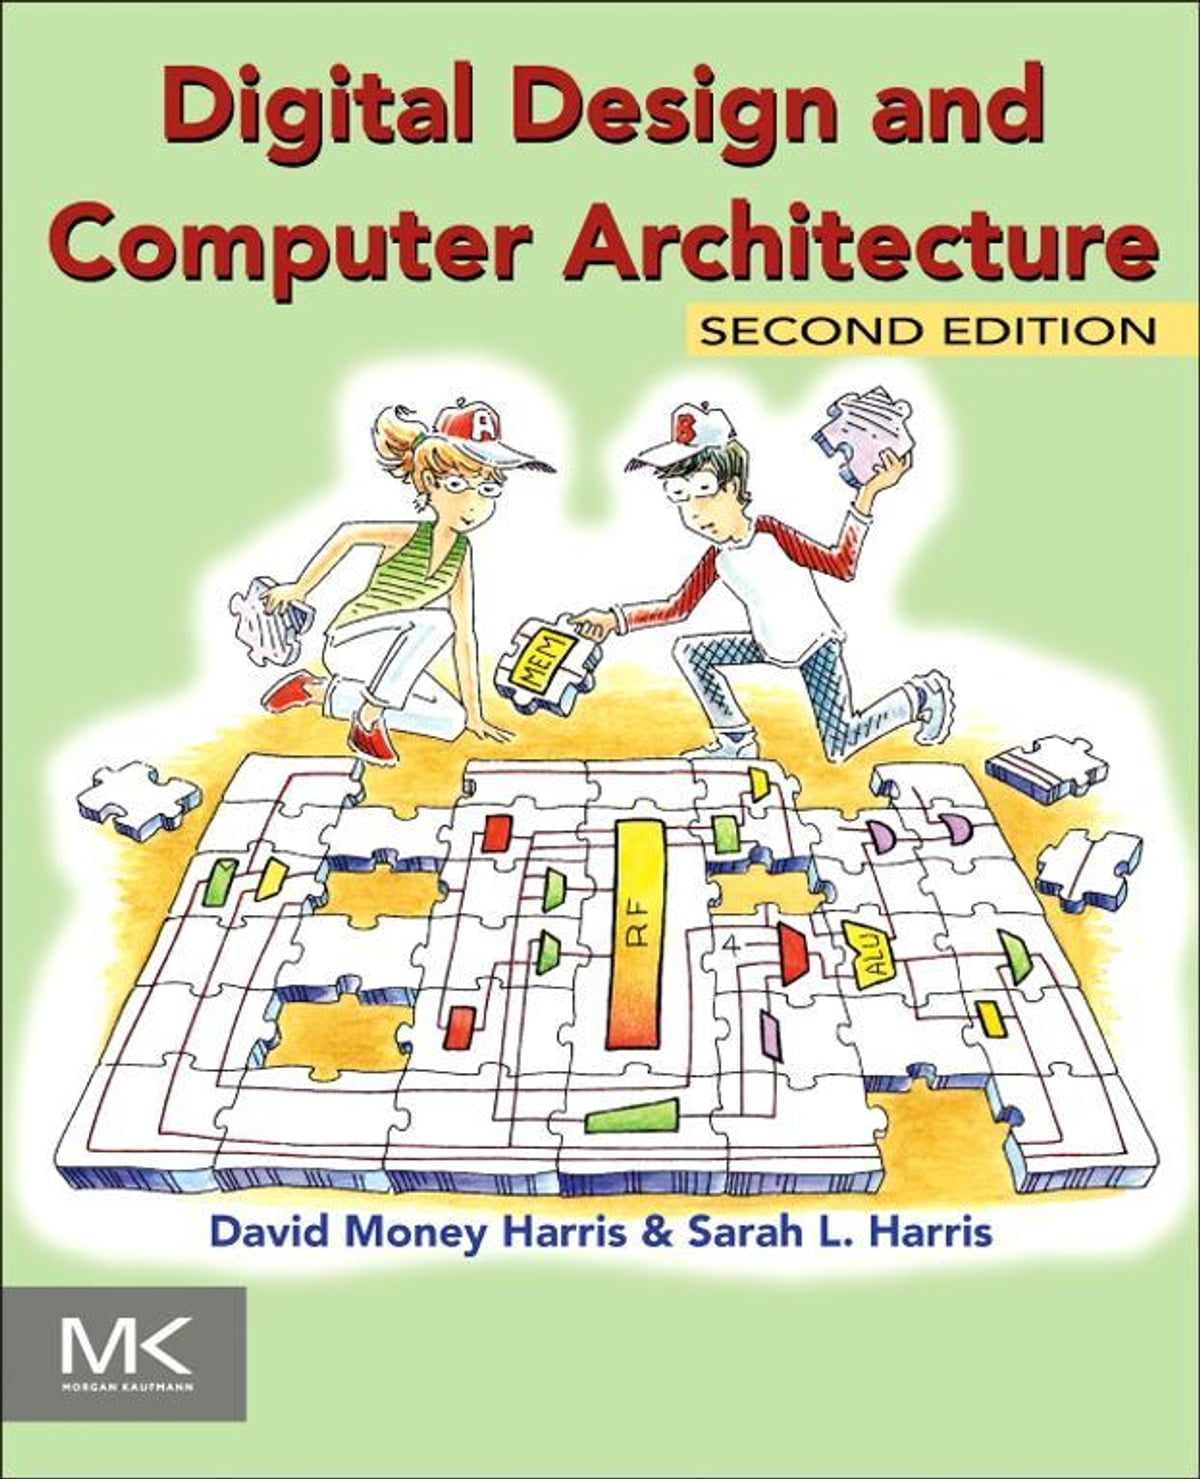 Digital Design and Computer Architecture, Second Edition, takes a unique and modern approach to digital design, introducing the reader to the fundamentals of digital logic and then showing step by step how to build a MIPS microprocessor in both Verilog and VHDL. This new edition combines an engaging and humorous writing style with an updated and hands-on approach to digital design. It presents new content on I/O systems in the context of general purpose processors found in a PC as well as microcontrollers found almost everywhere.